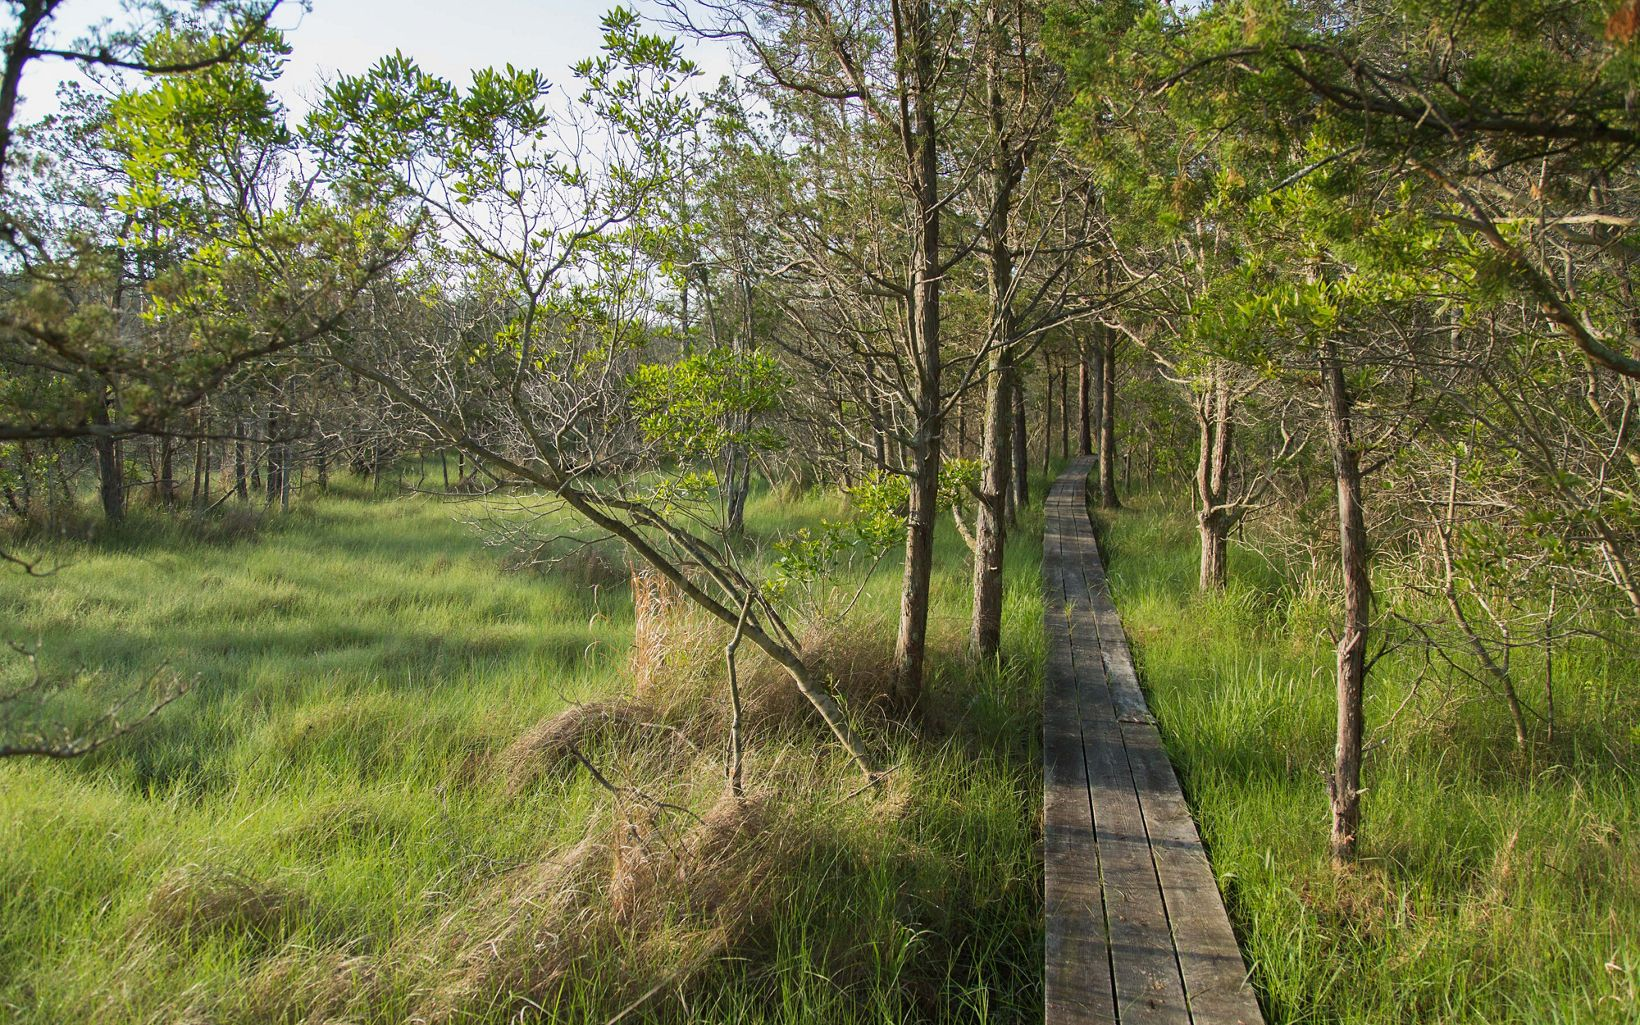 A narrow path built from wooden planks stretches into the distance between a stand of widely spaced trees. Tall grass fills the open space next to the path.